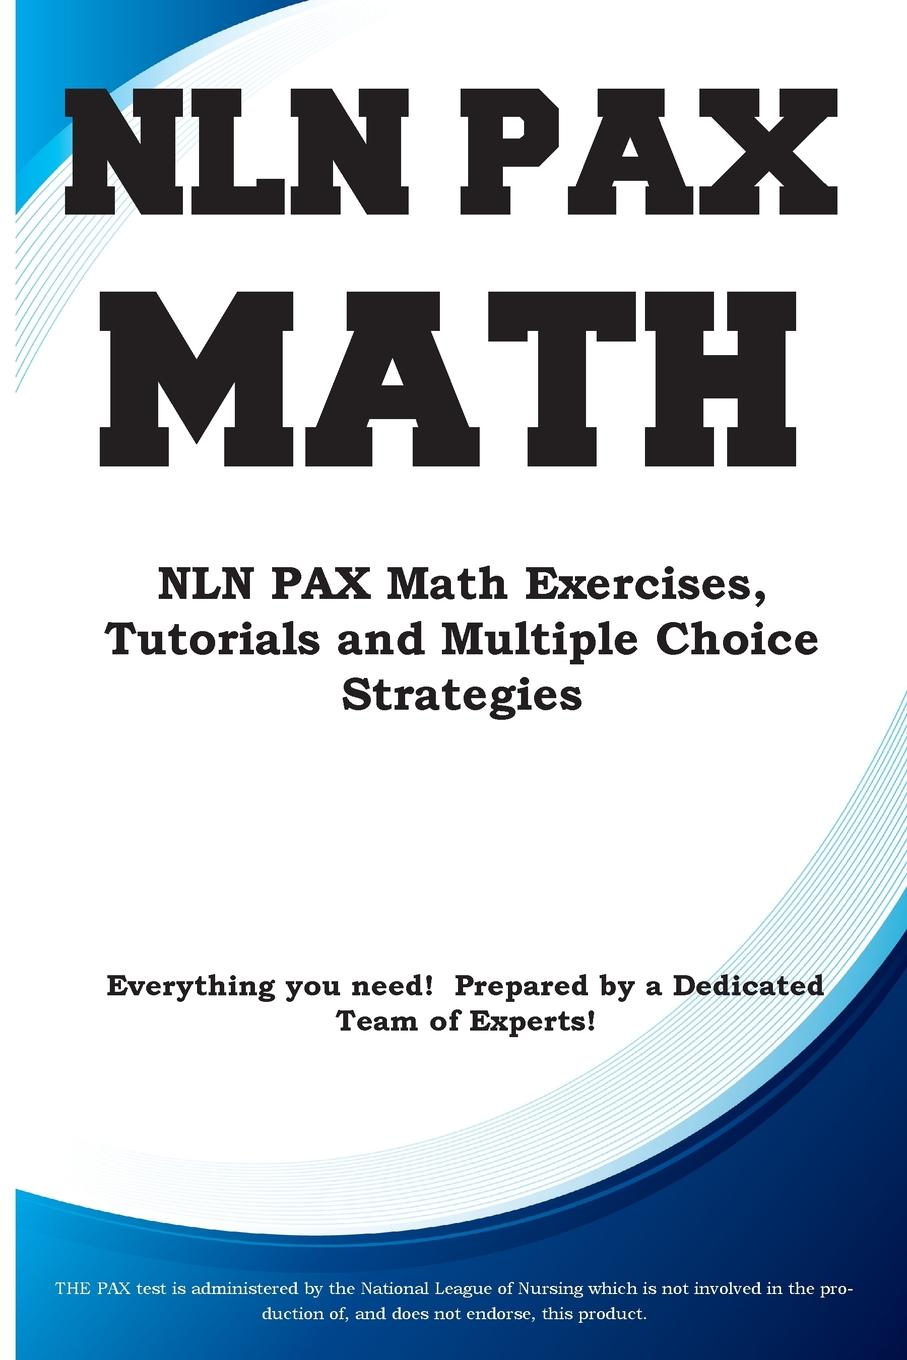 Complete Test Preparation Inc. NLN PAX Math. NLN PAX Math Exercises, Tutorials and Multiple Choice Strategies steve slavin all the math you ll ever need a self teaching guide